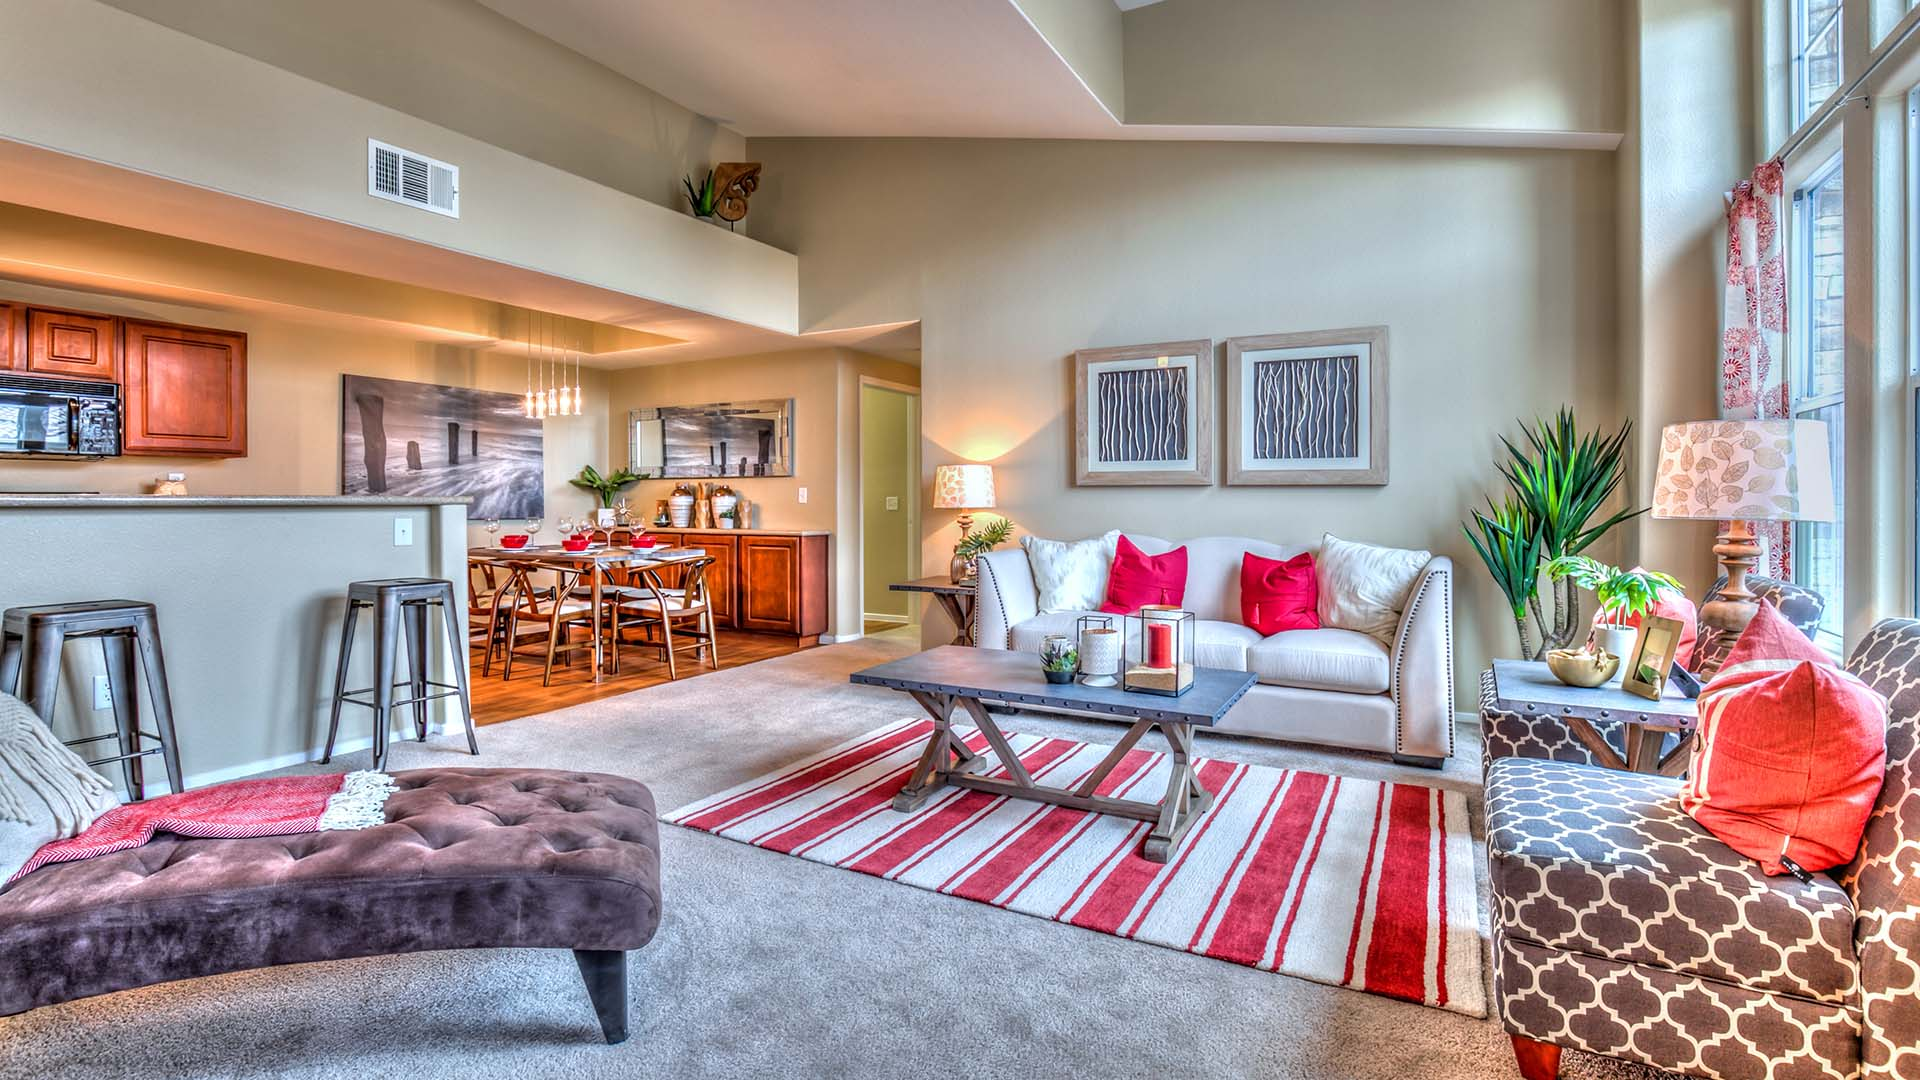 A living room with tall vaulted ceilings, soft carpet, and plush furniture.